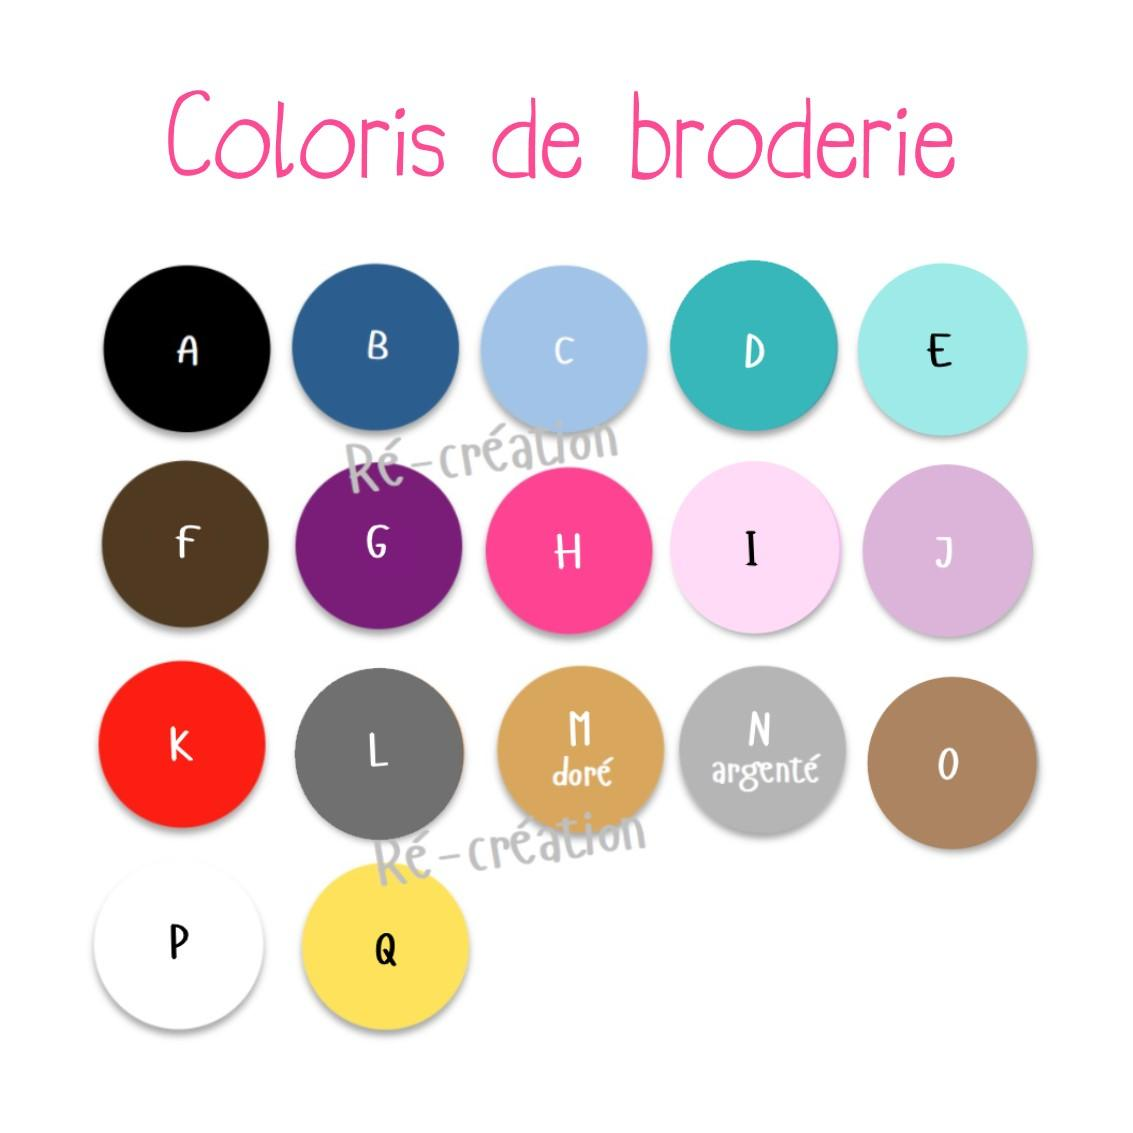 Coloris broderie 2